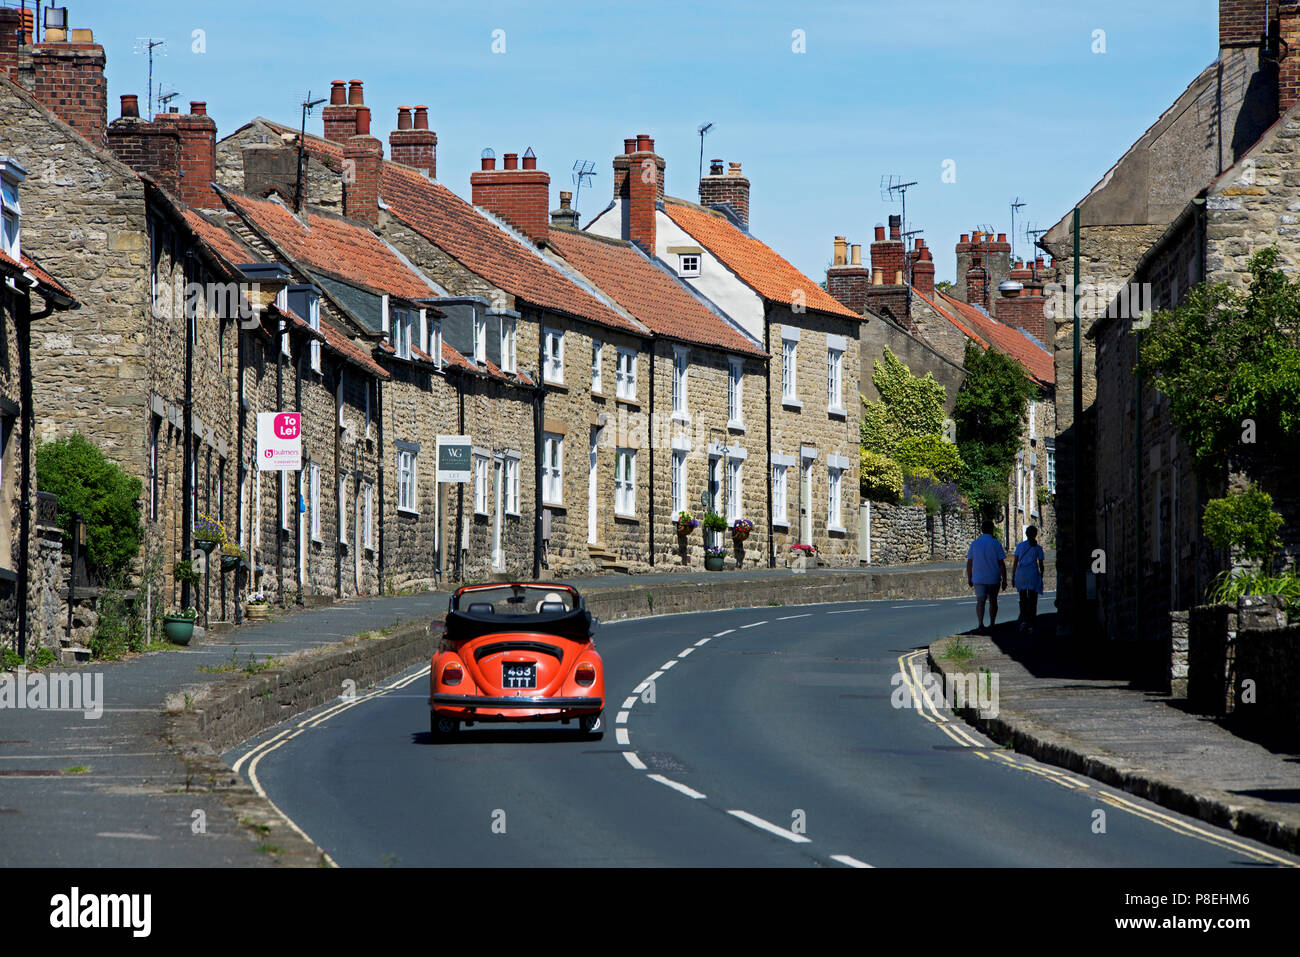 Open-topped VW Beetle in Thornton-le-Dale, North Yorkshire, England UK - Stock Image